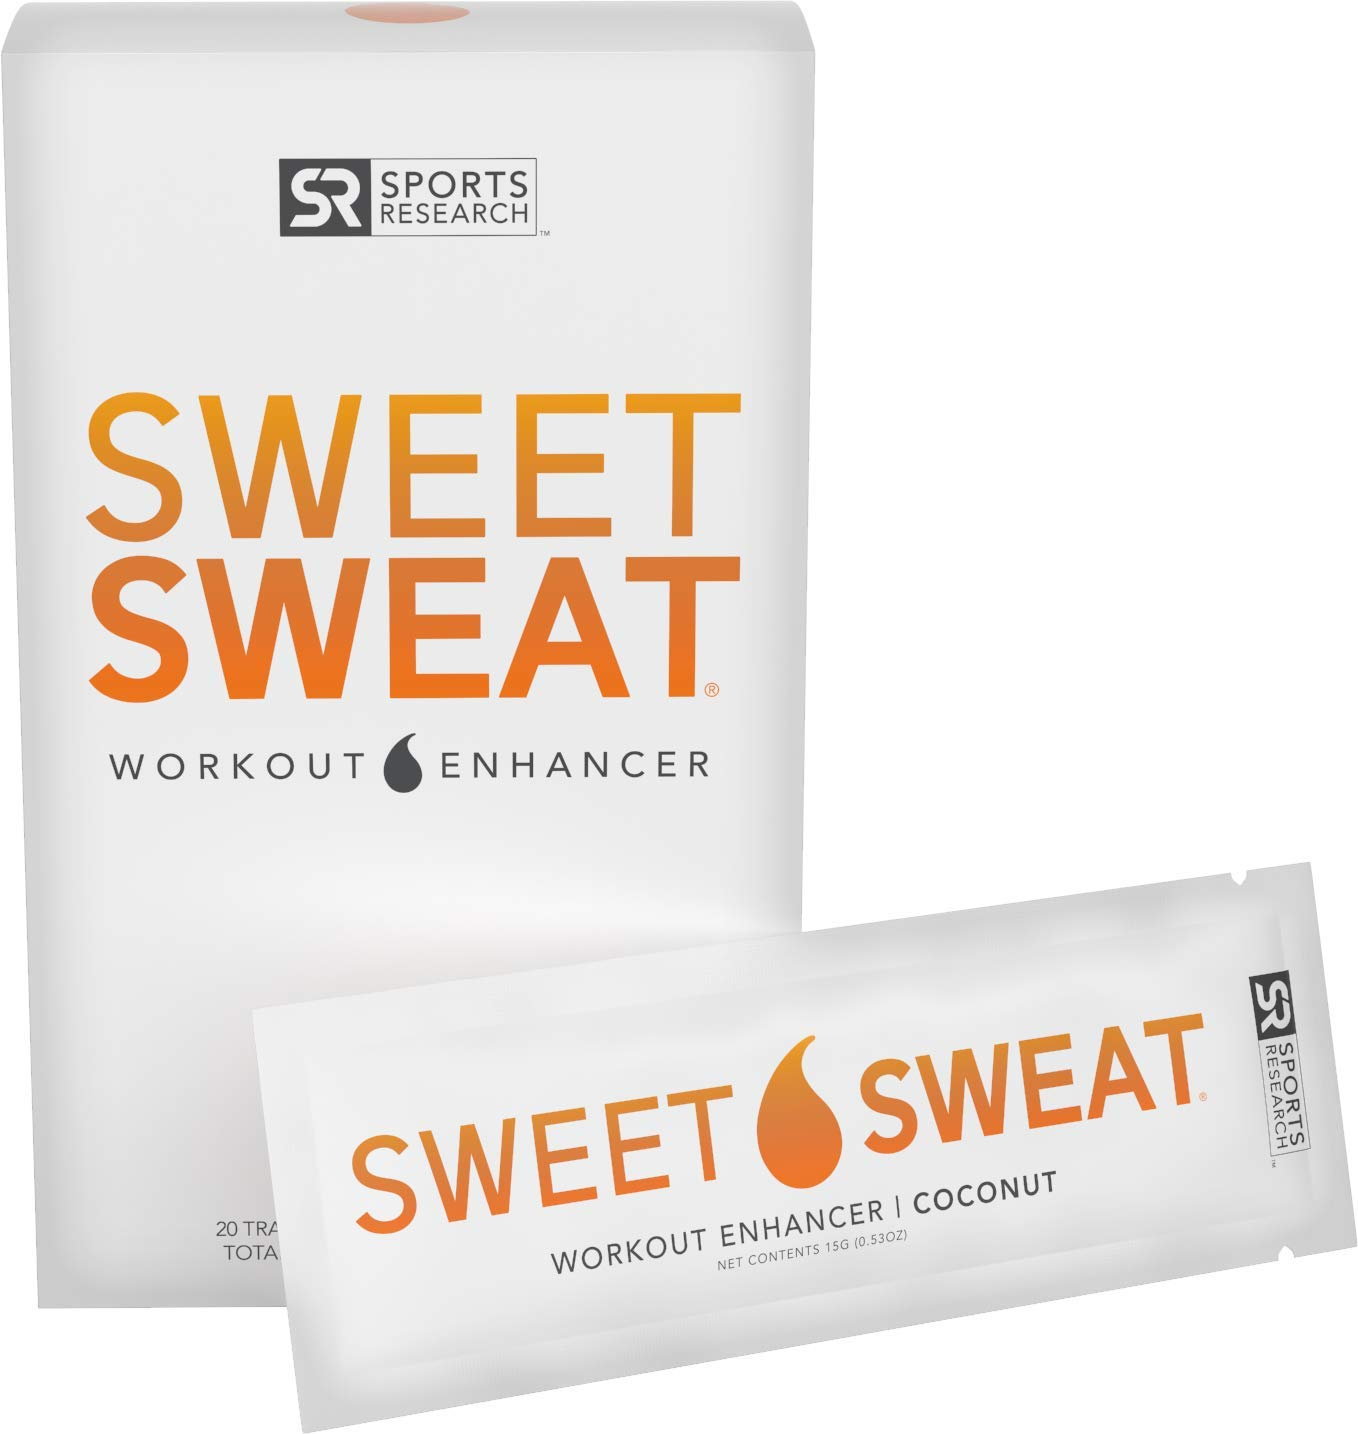 Sweet Sweat Coconut 'Workout Enhancer' Packets - 10.5oz (20 Travel Packets)